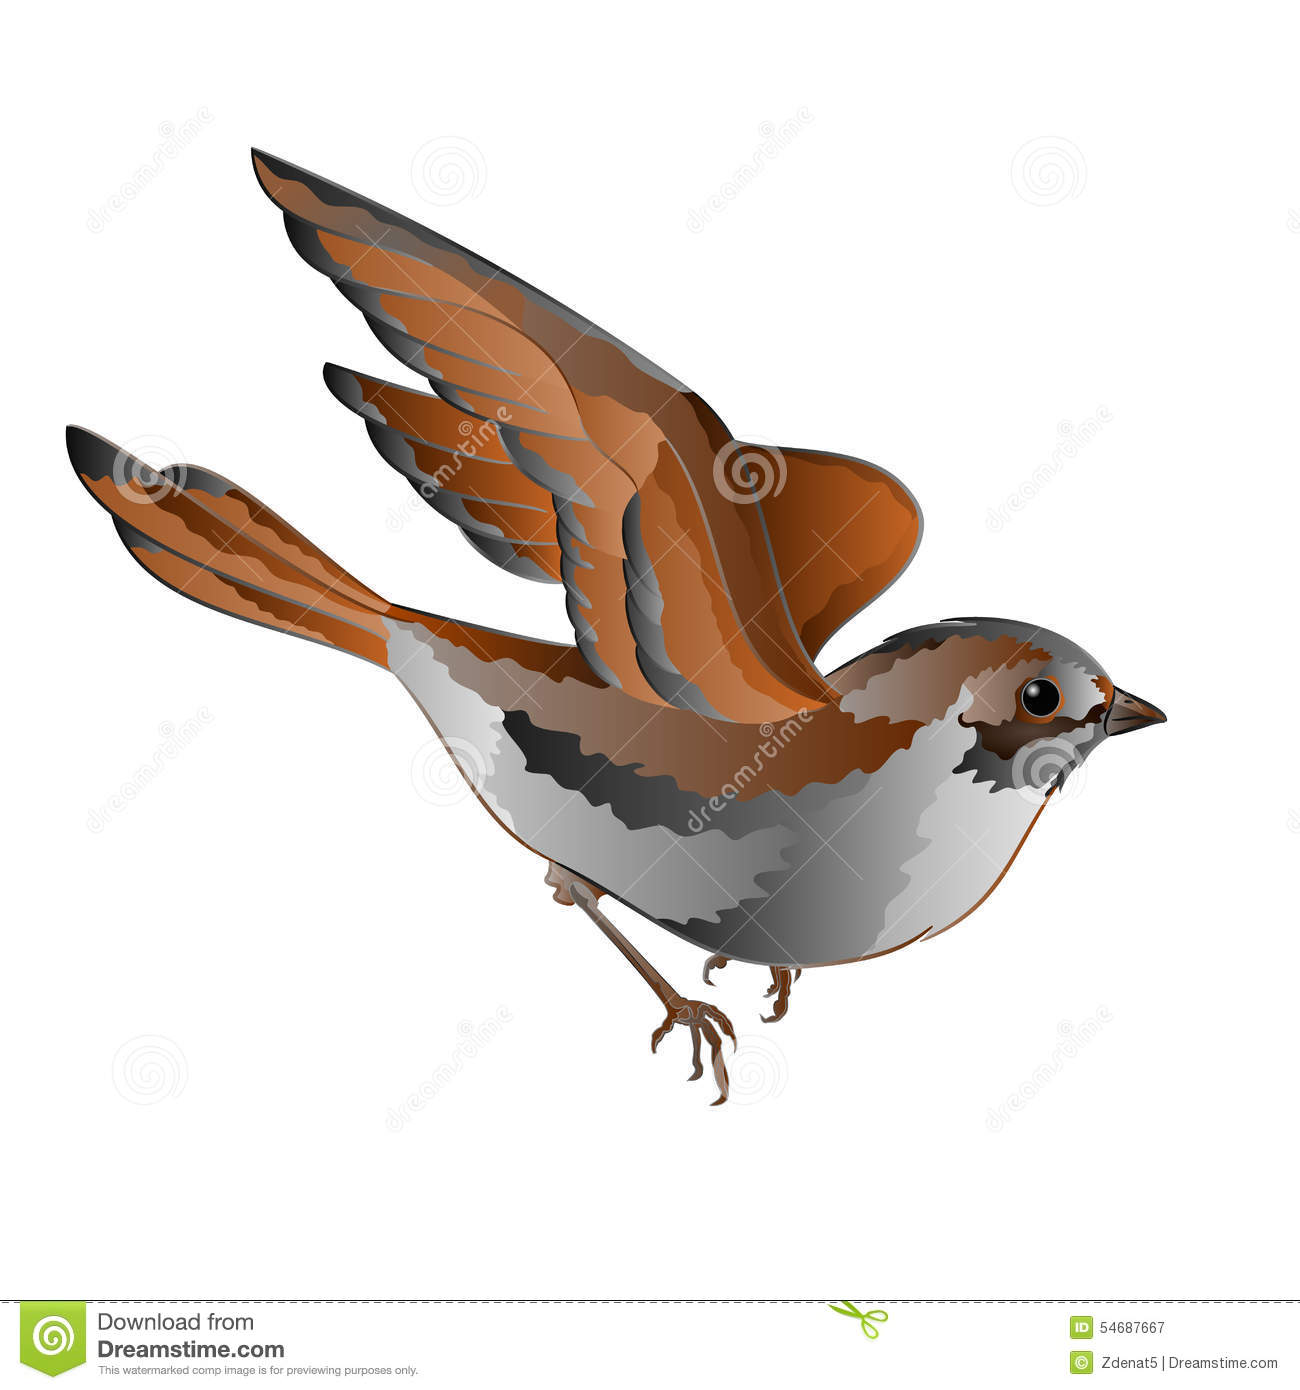 Passer Domesticus House Sparrow Stock Illustrations.